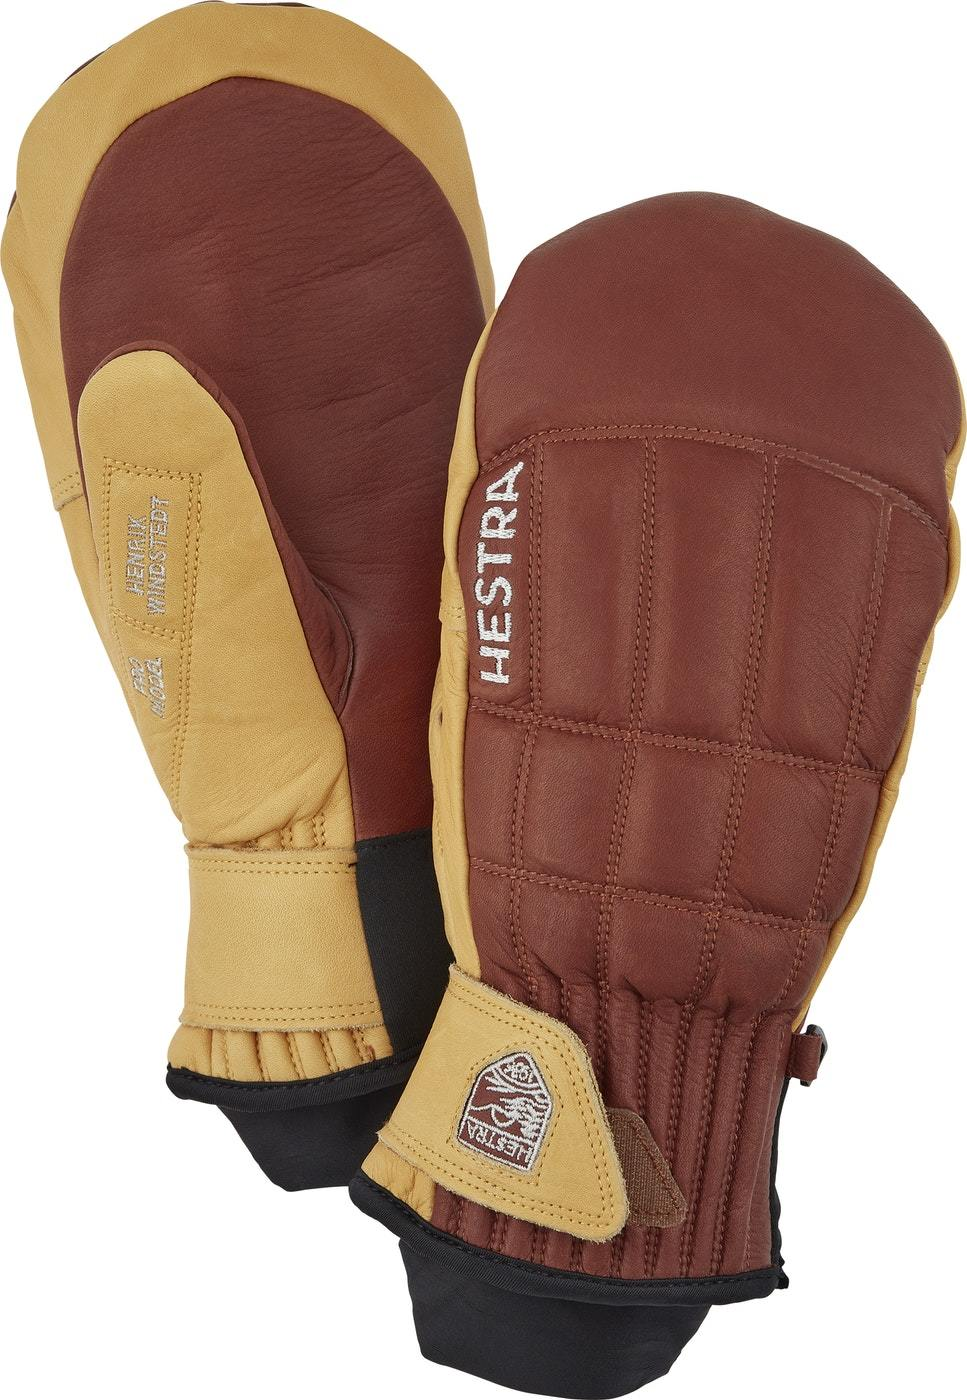 Henrik Leather Pro Model Mitt - 30821-750701